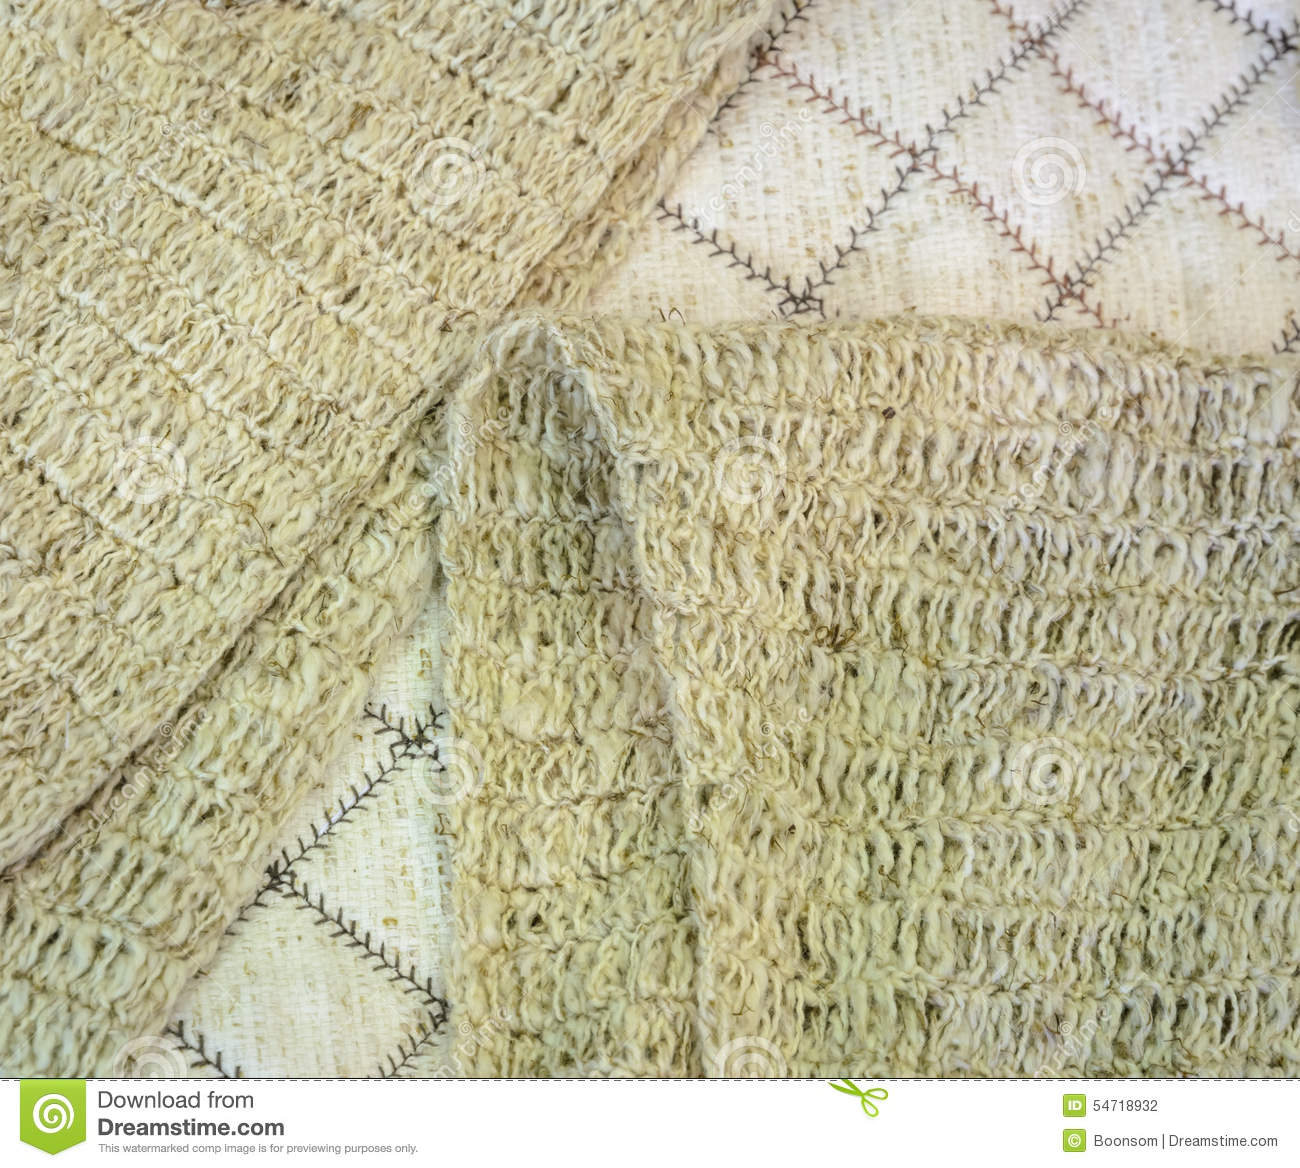 Knitted Scarf Of Bamboo Yarn Stock Photo - Image: 54718932